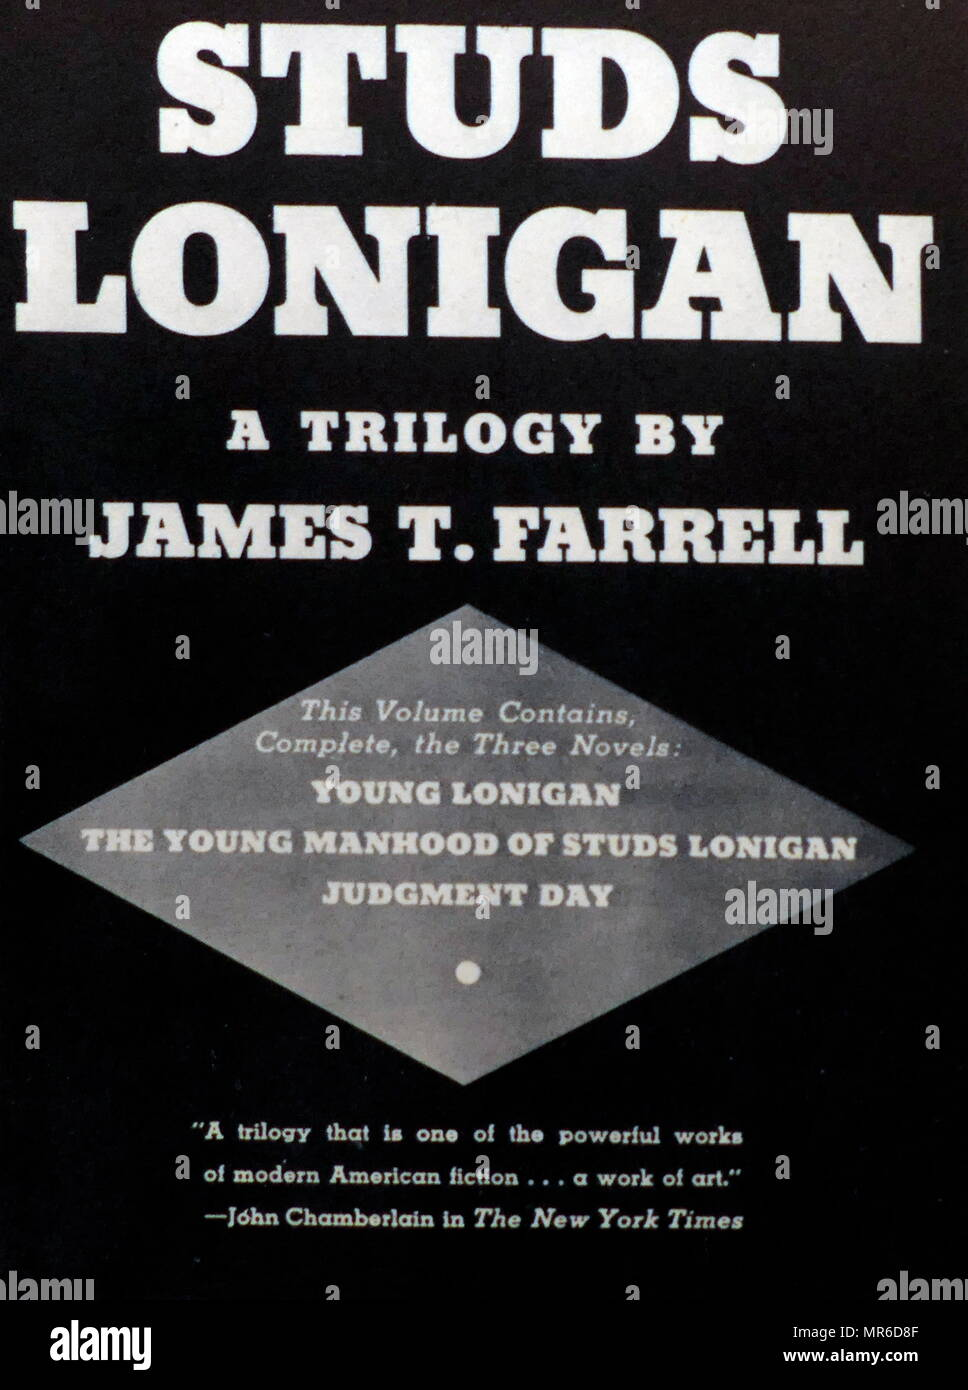 Studs Lonigan trilogy, by James Thomas Farrell (February 27, 1904 – August 22, 1979); American novelist The trilogy, which was made into a film in 1960 and a television series in 1979. - Stock Image